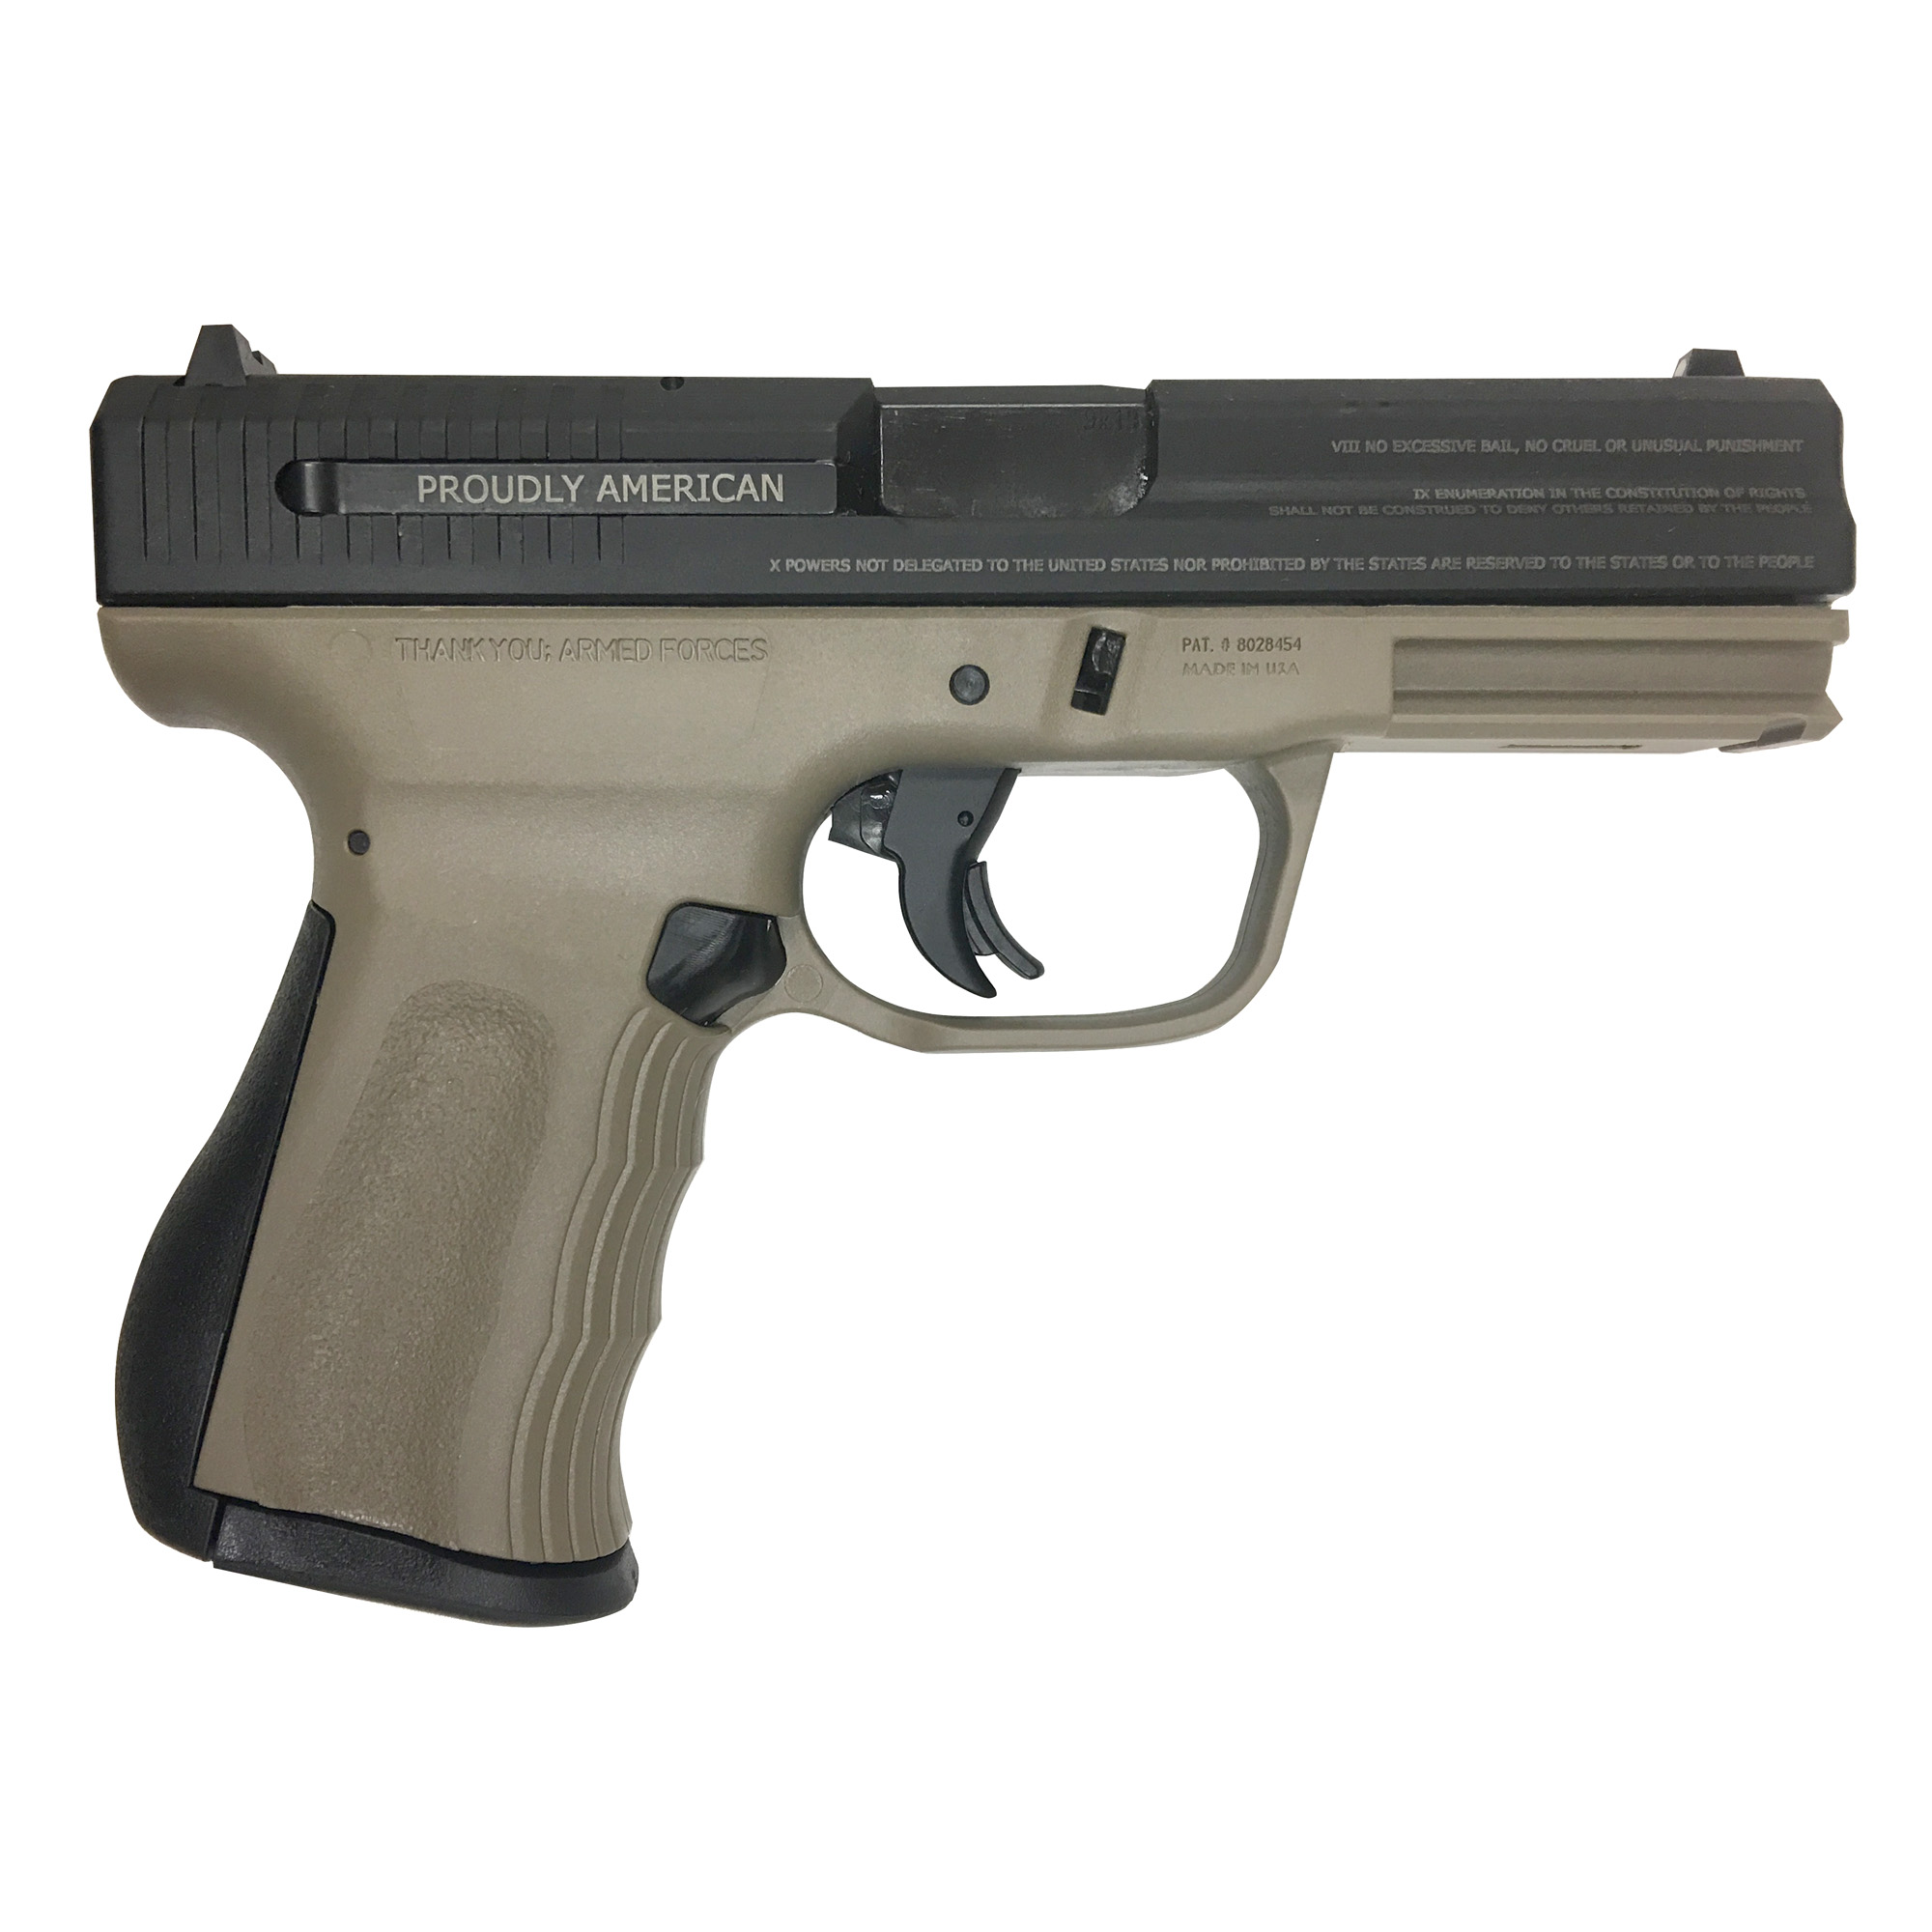 """The 9C1 G2 is ergonomically built to comfortably fit both large and small hands. The barrel is engineered to sit low for superior point and shoot accuracy and reduced muzzle flip. The 9C1 G2 has virtually no external protrusions"""" making it ideal for concealed carry; and of course"""" it's Proudly American."""